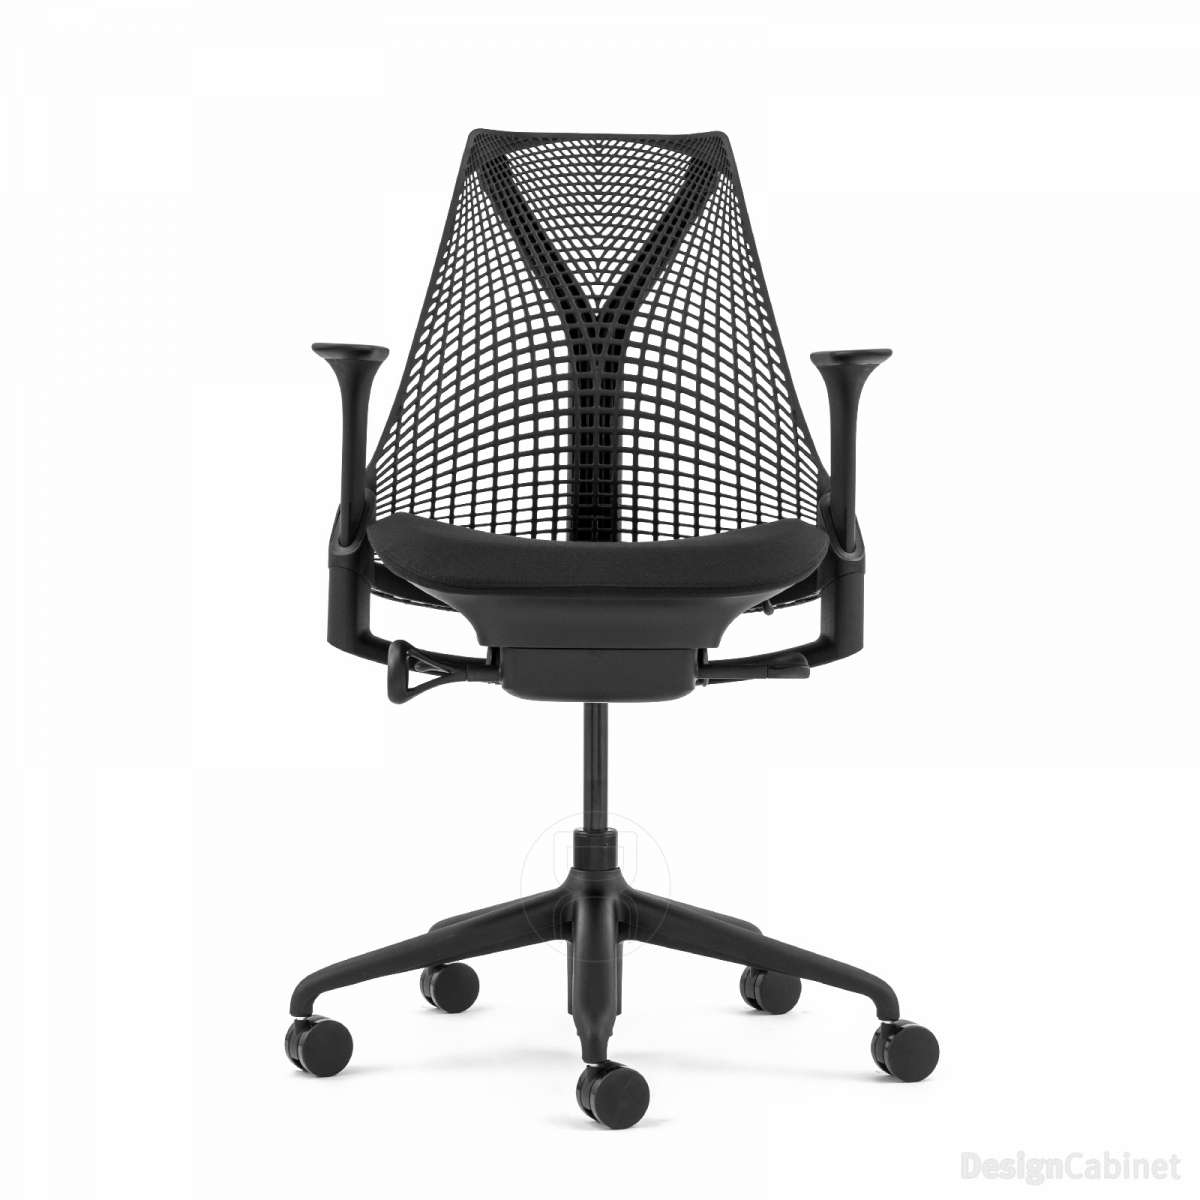 herman miller case analysis Slack and company when it comes to creating work environments where people want to be, and where they can do their best work, even the smallest details make a difference.